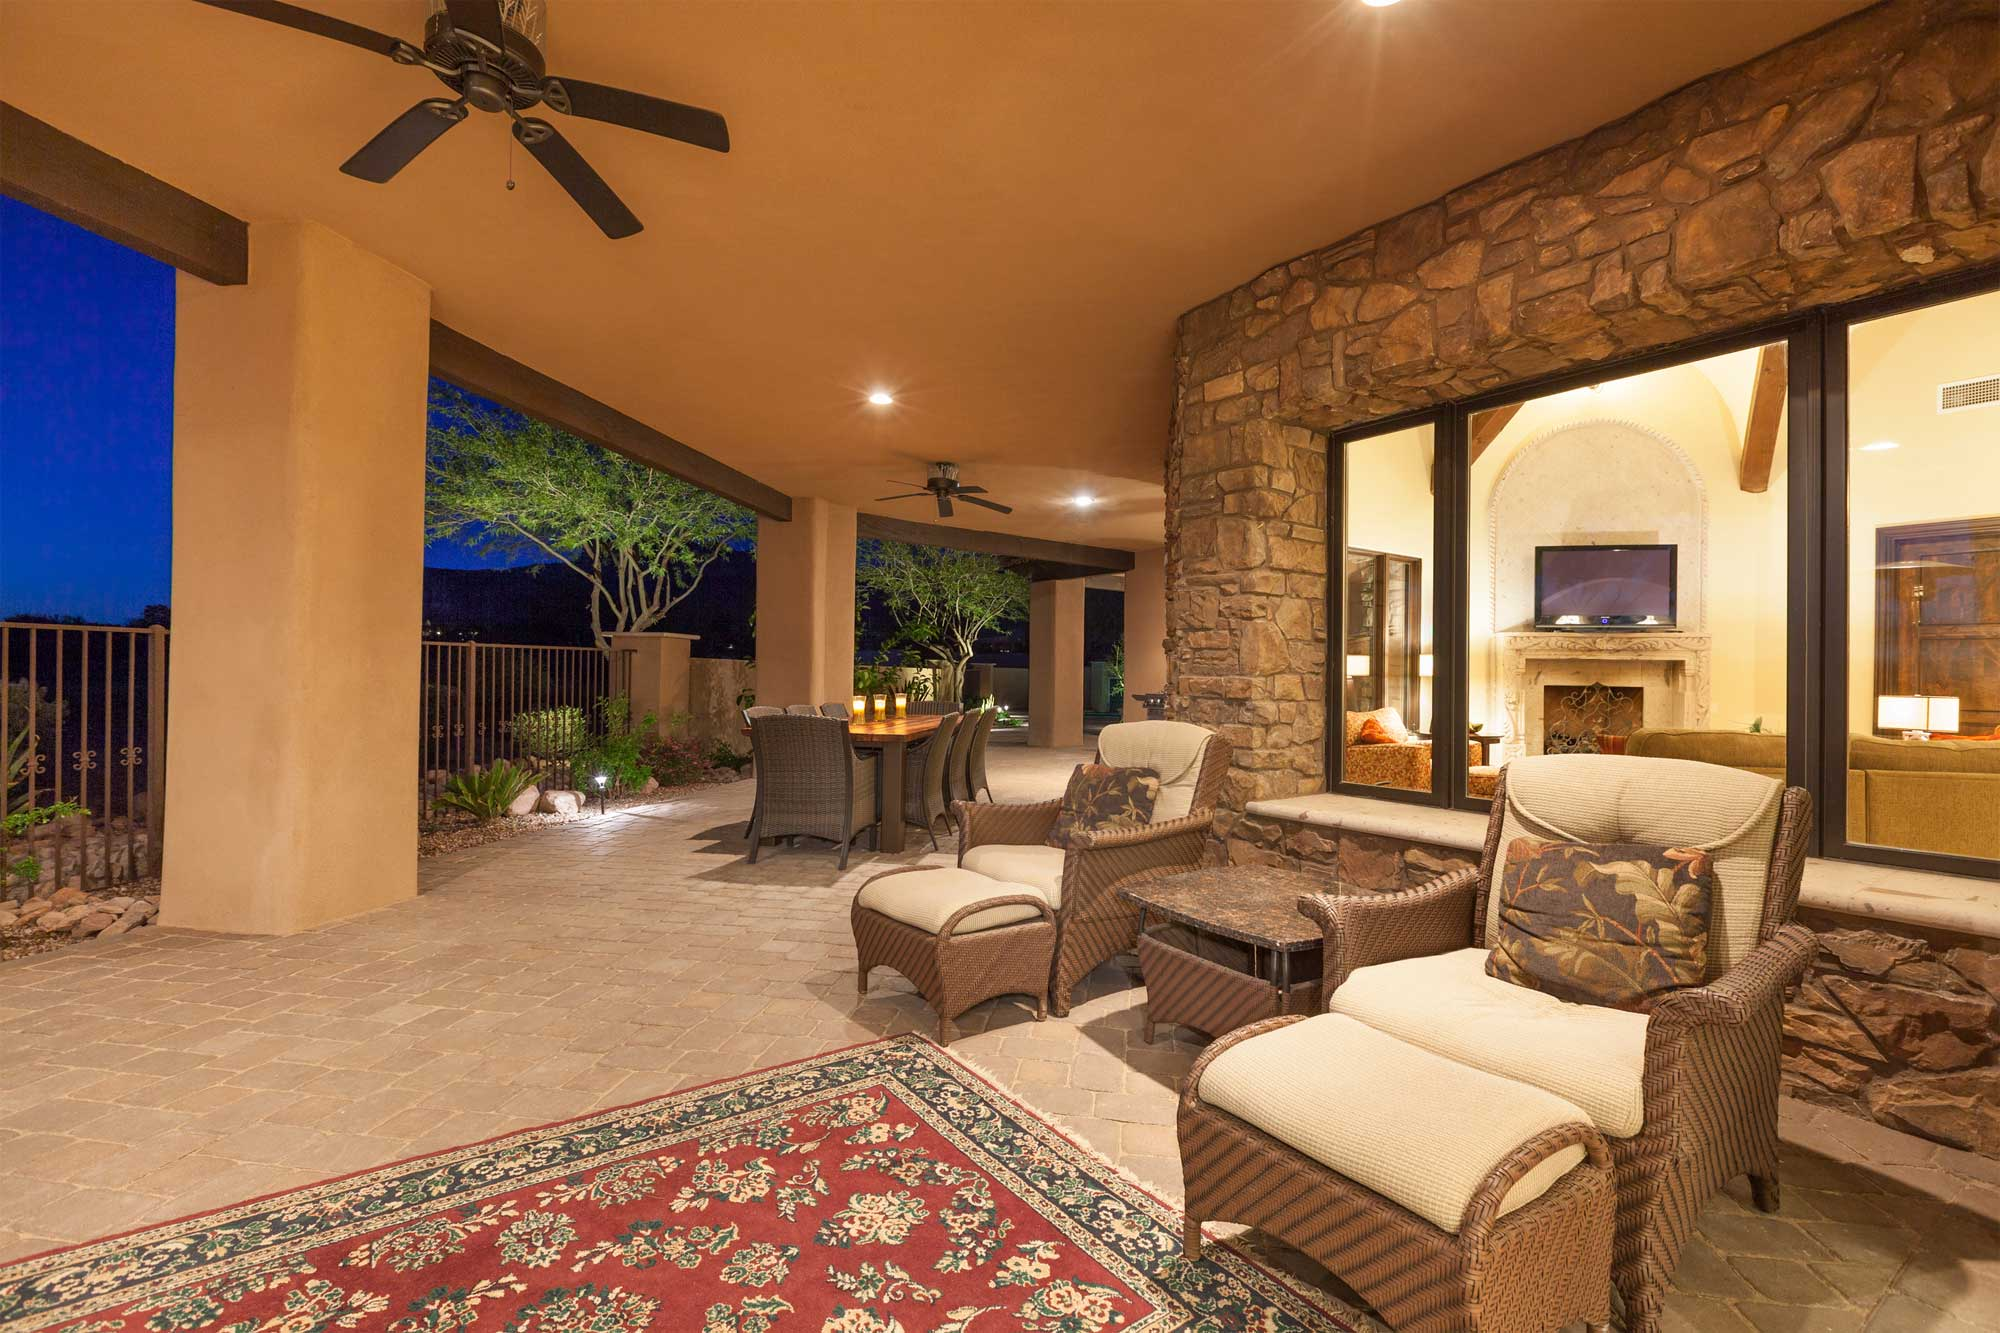 How to fool a radon test - New Homes For Sale Tucson Oro Valley Real Estate Vail Property Listings Pima Az Realtor Agent Mls